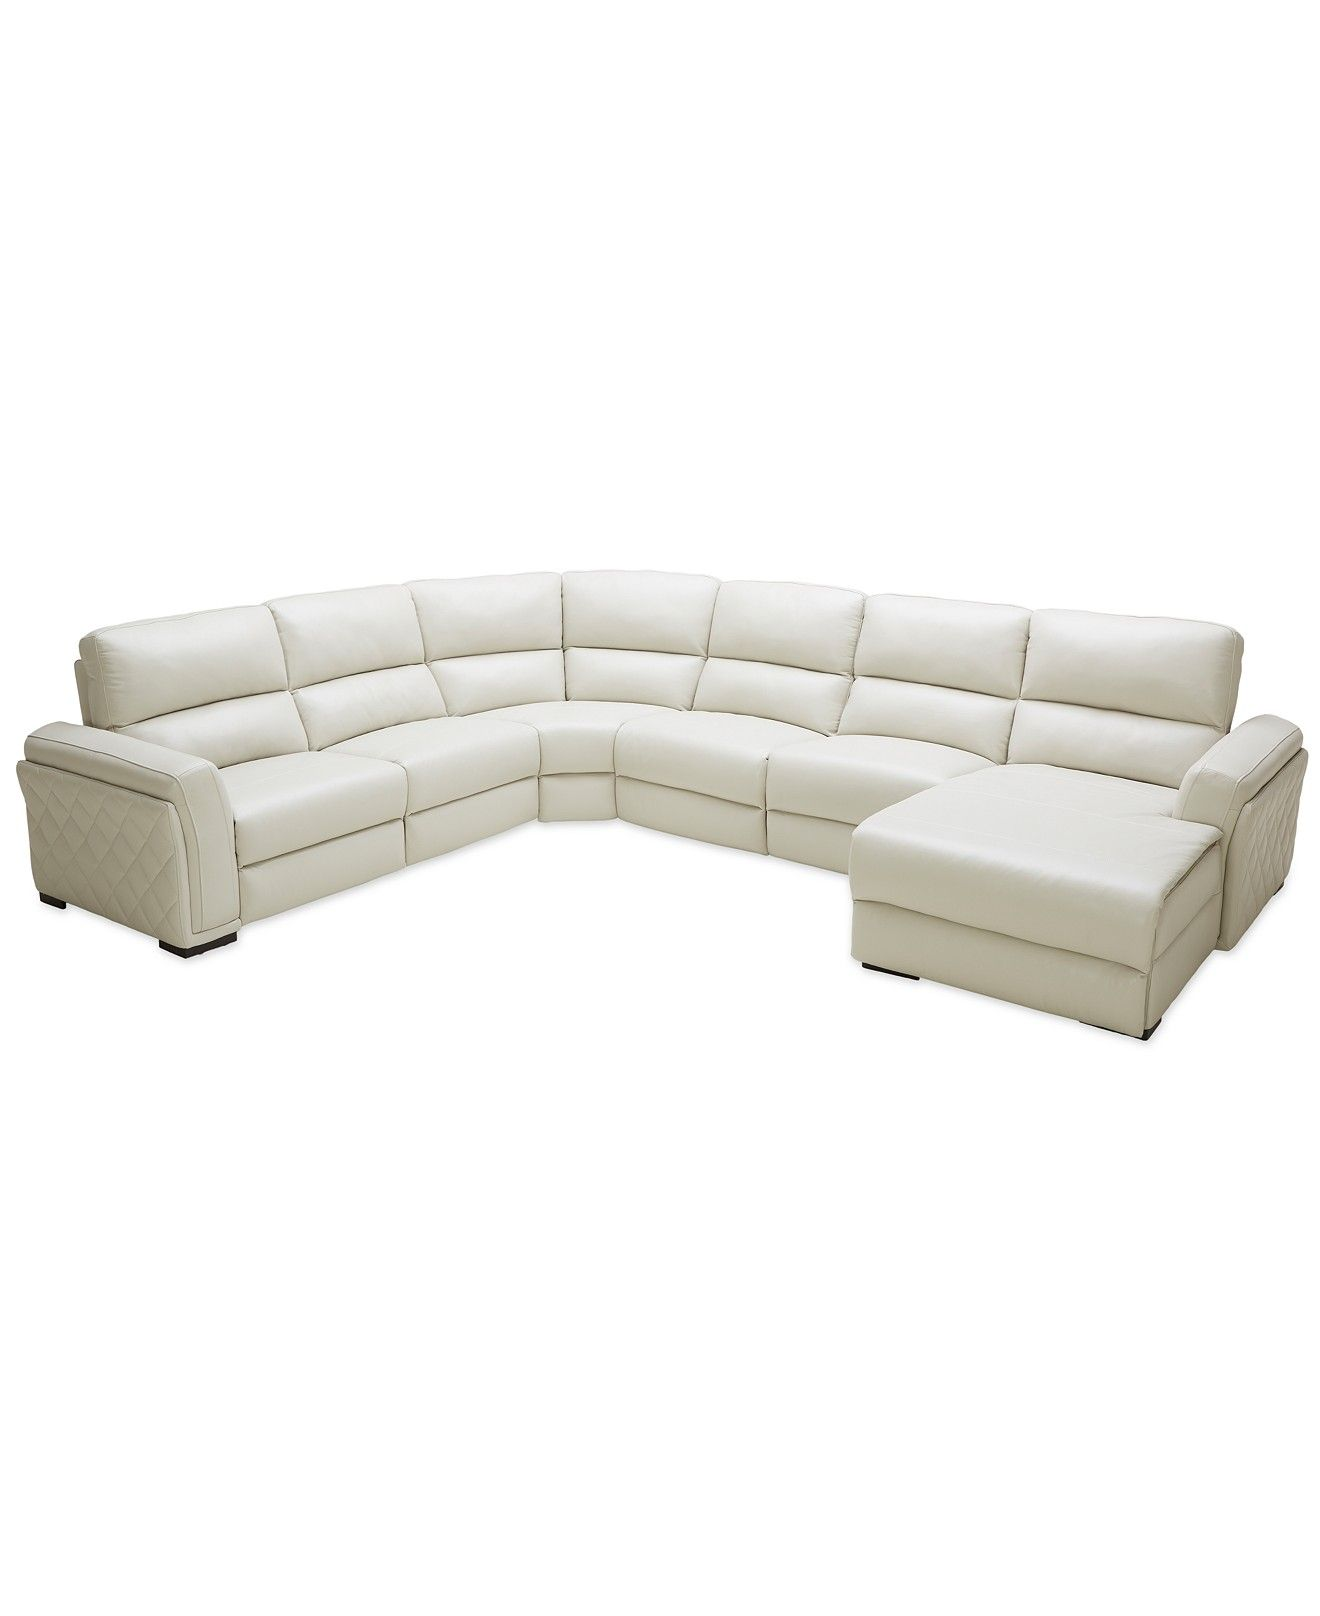 Jessi 6 pc Leather Sectional Sofa with Chaise with 2 Power